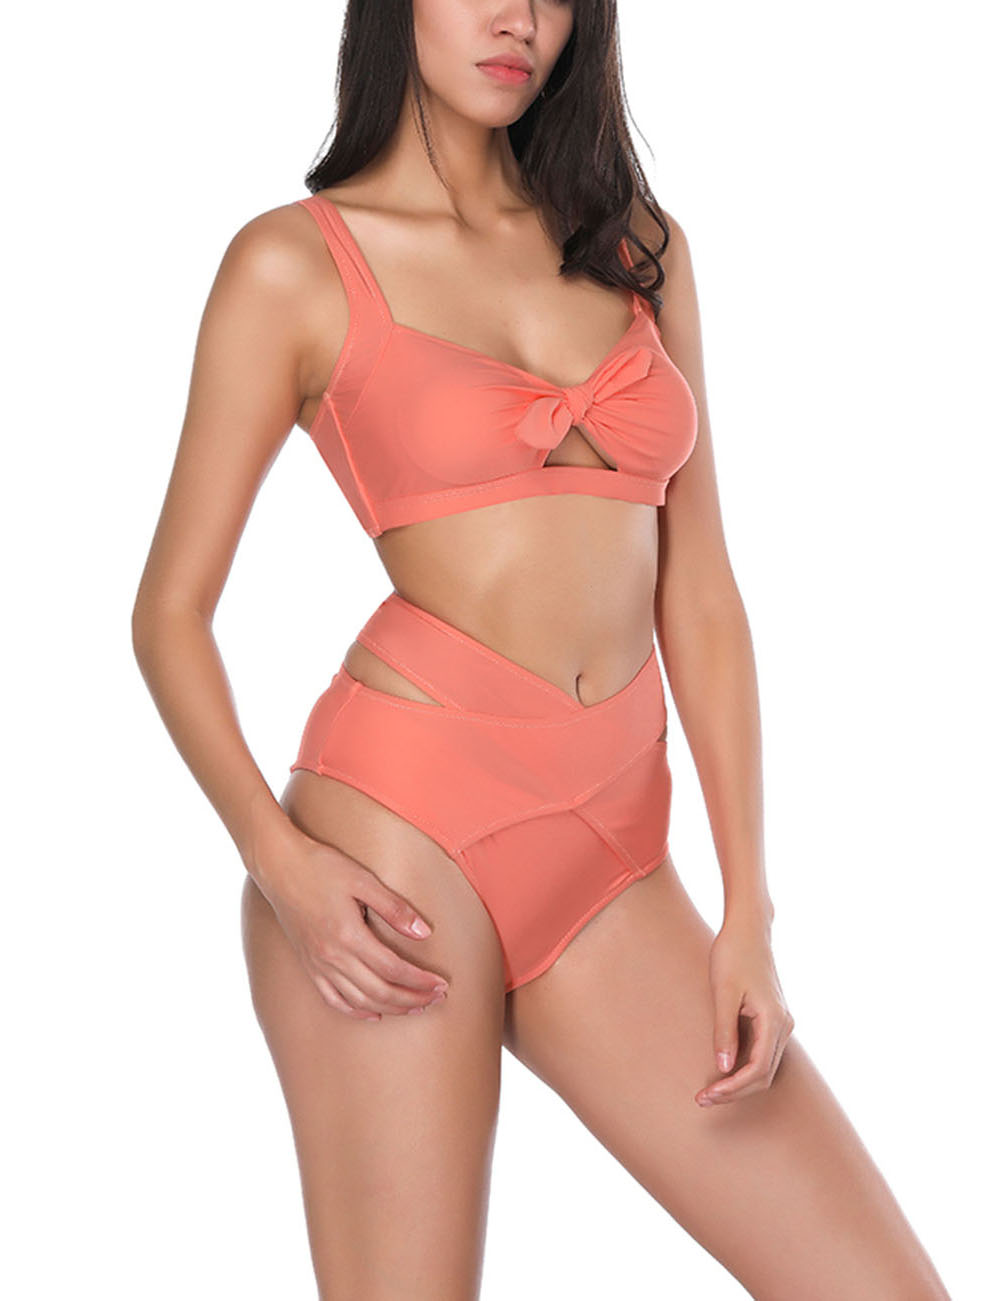 //cdn.affectcloud.com/hexinfashion/upload/imgs/BIG_SALE/Swimsuits_over_$3/LB160350/LB160350-202006115ee1f256c46cd.jpg